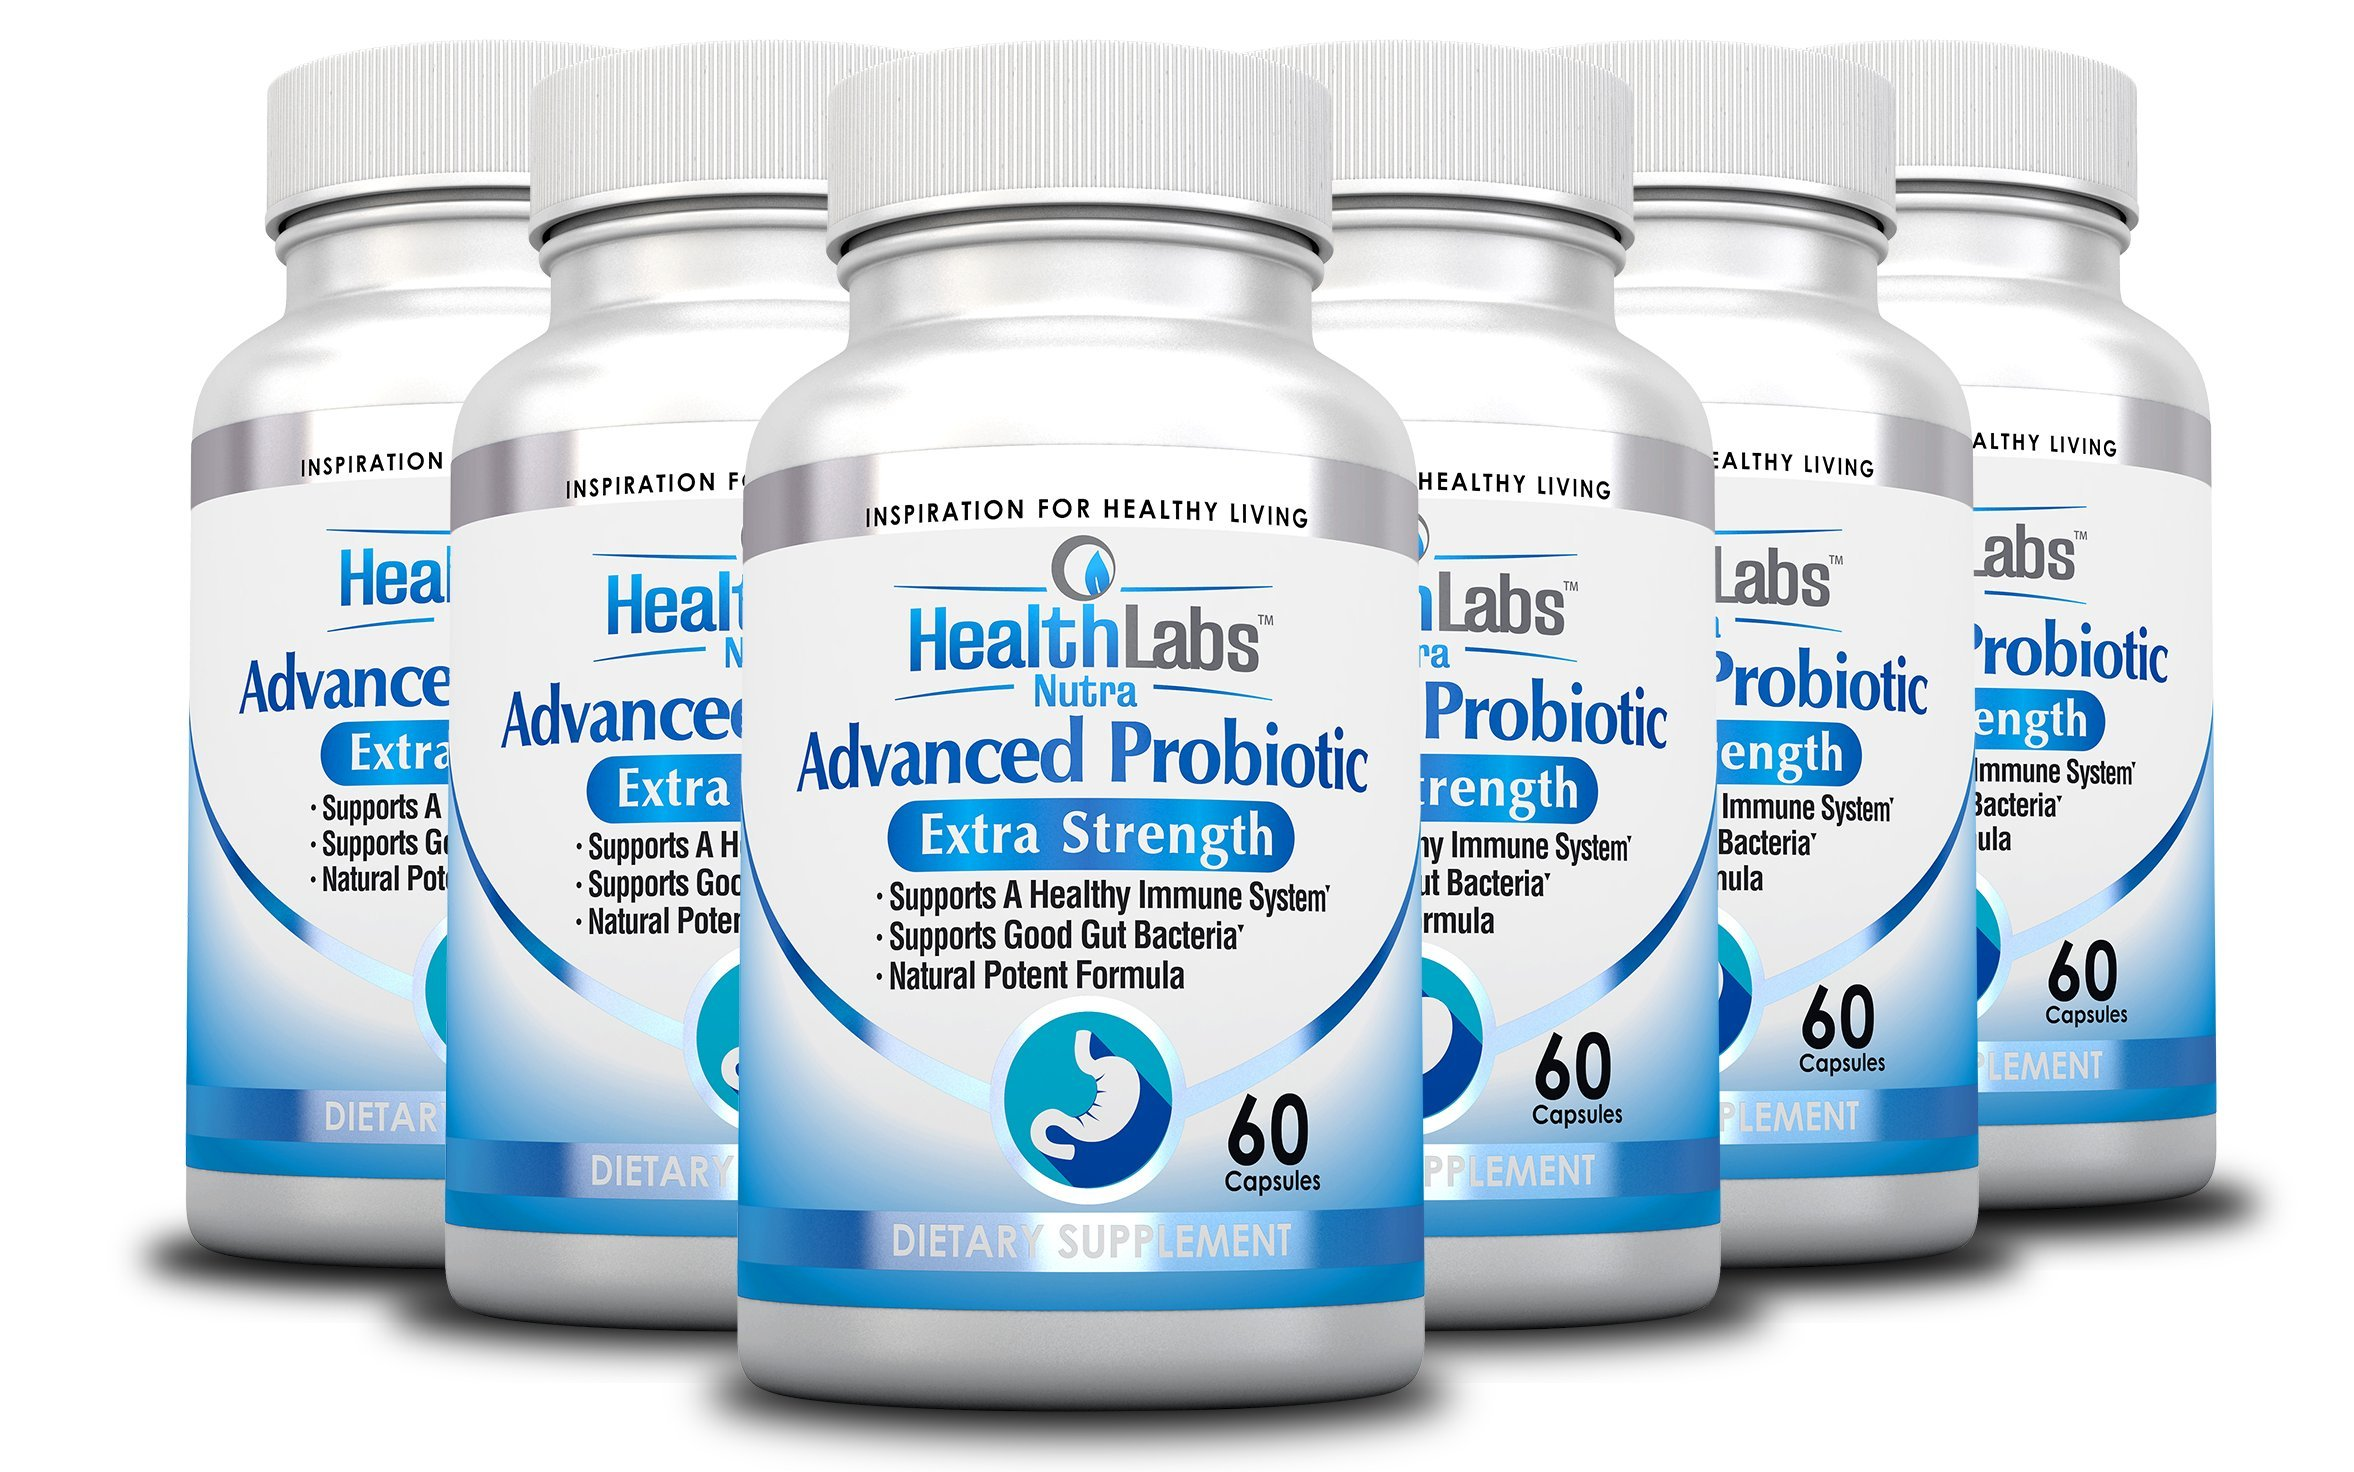 Advanced Probiotics 6-Month Supply Extra Strength Supplement for a Healthy Immune System, Restores Good Bacteria, Relieves Leaky Gut, Nausea, Indigestion, Irritable Bowel Syndrome (Pack of 6)